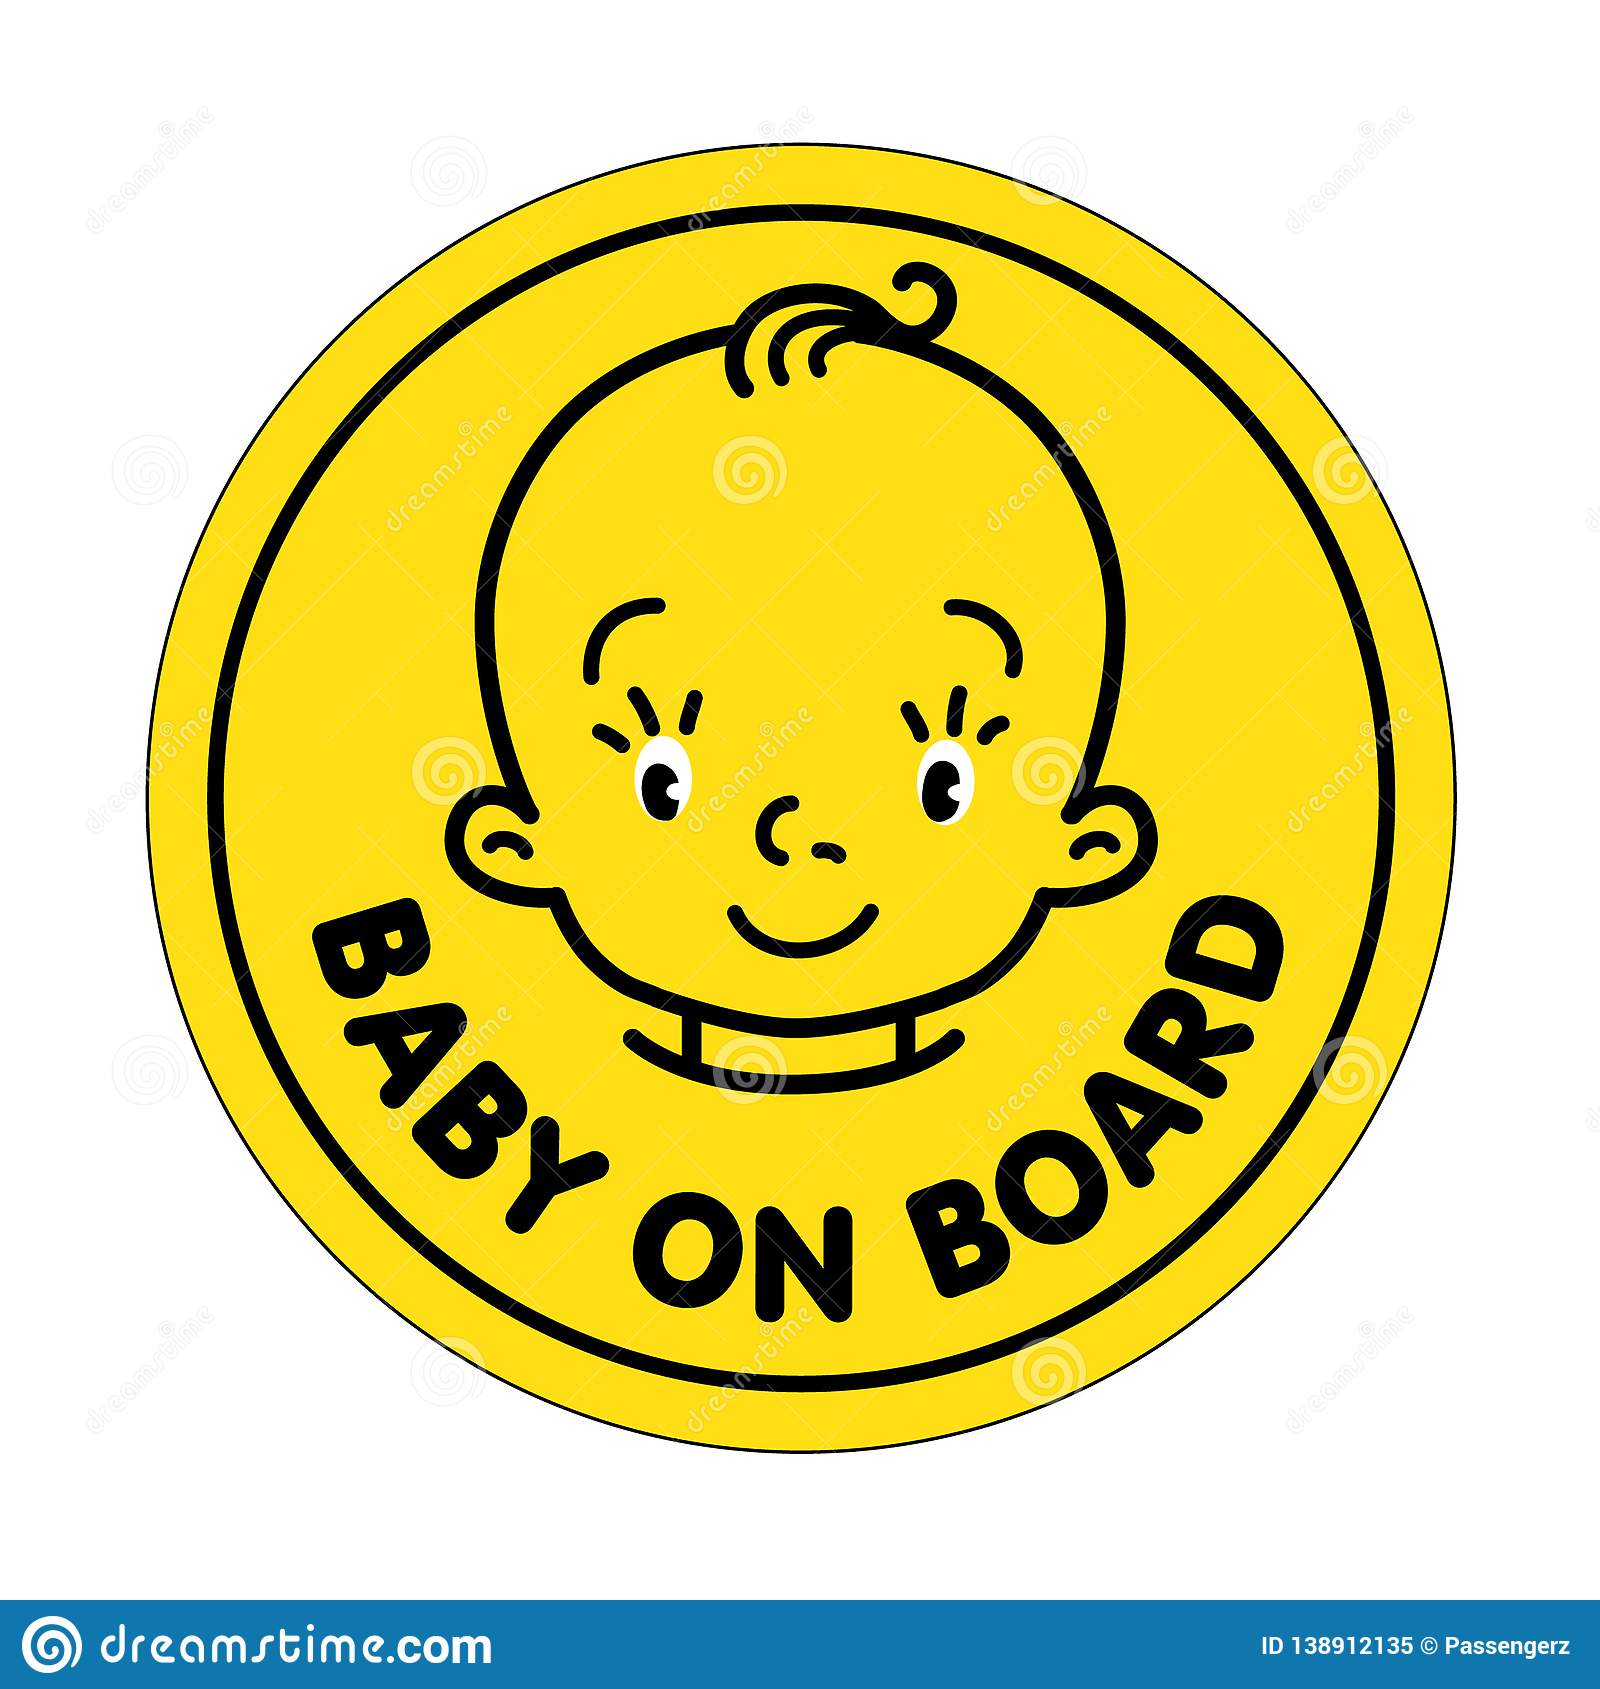 Baby on board or baby in car sticker